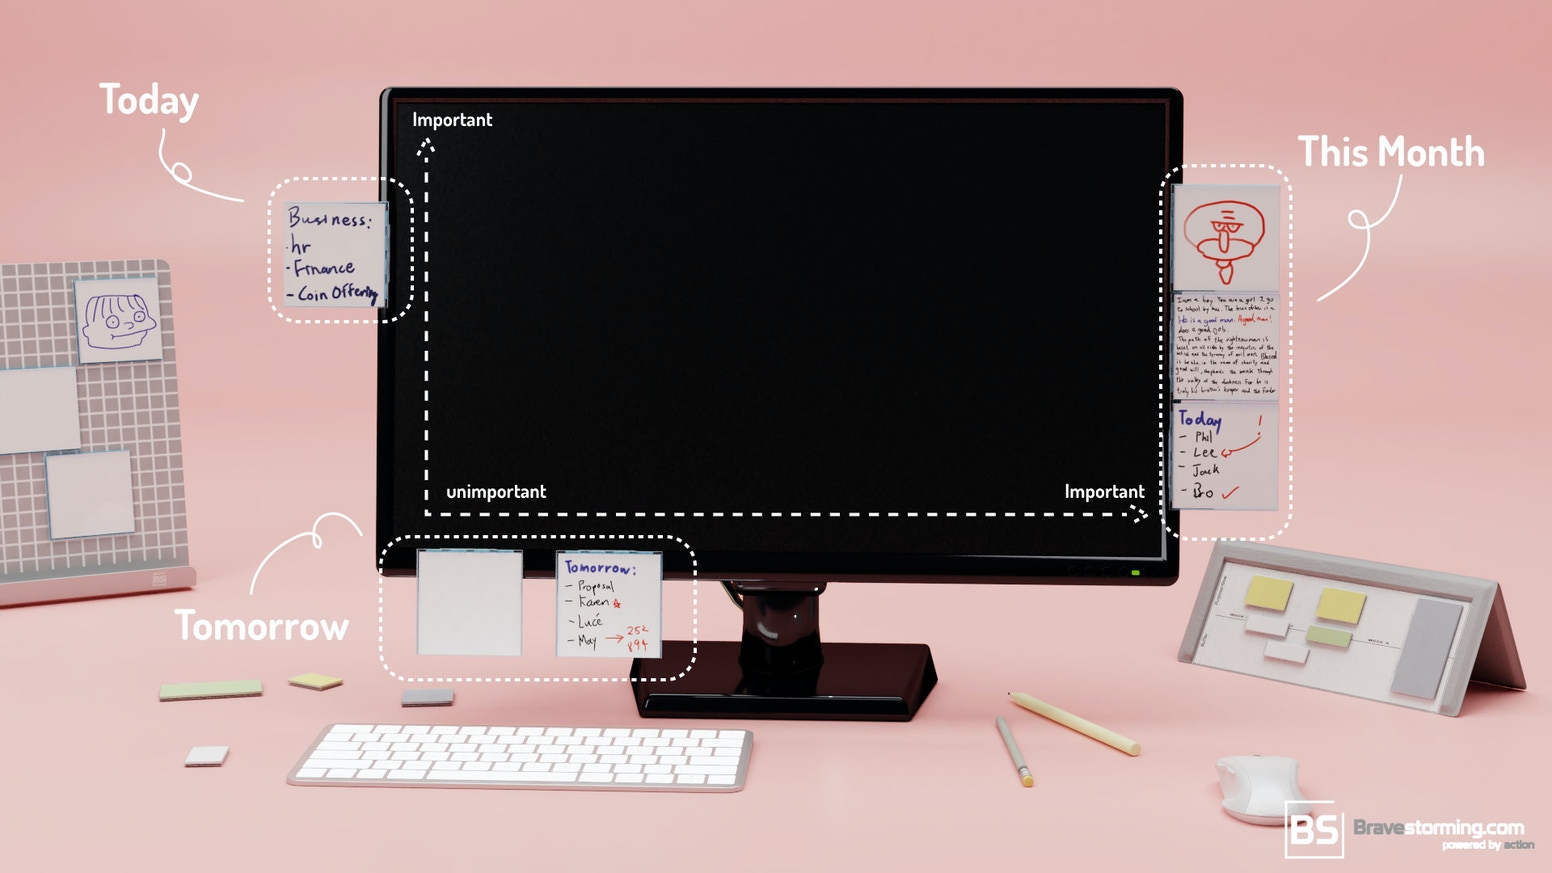 Washable, Reusable Silicon whiteboard with patented magnetic design. Making the workspace in your grip and control.